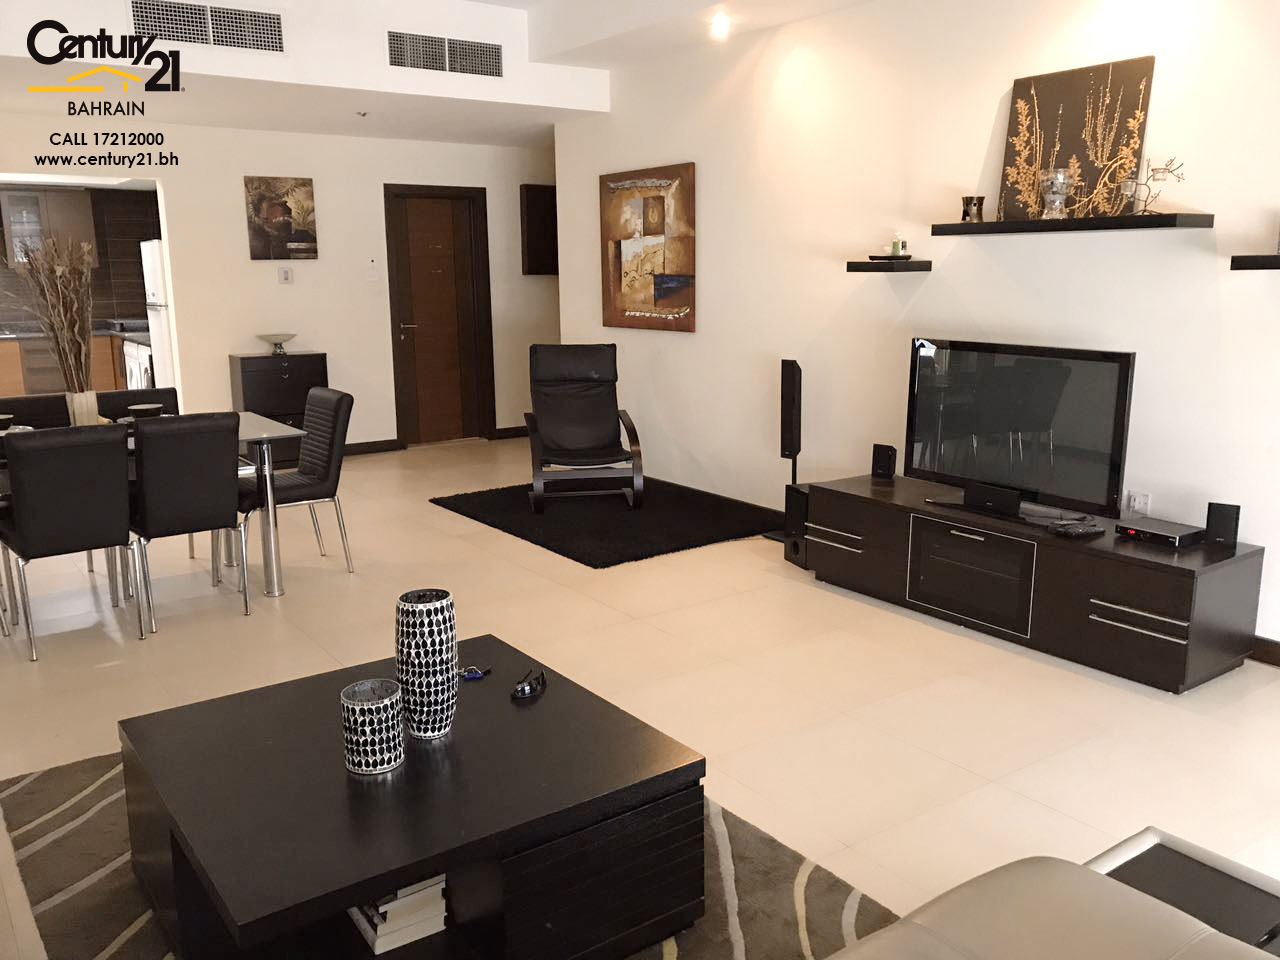 2 bedroom apartment for rent sale in juffair fr719 for 2 bedroom apartments for rent